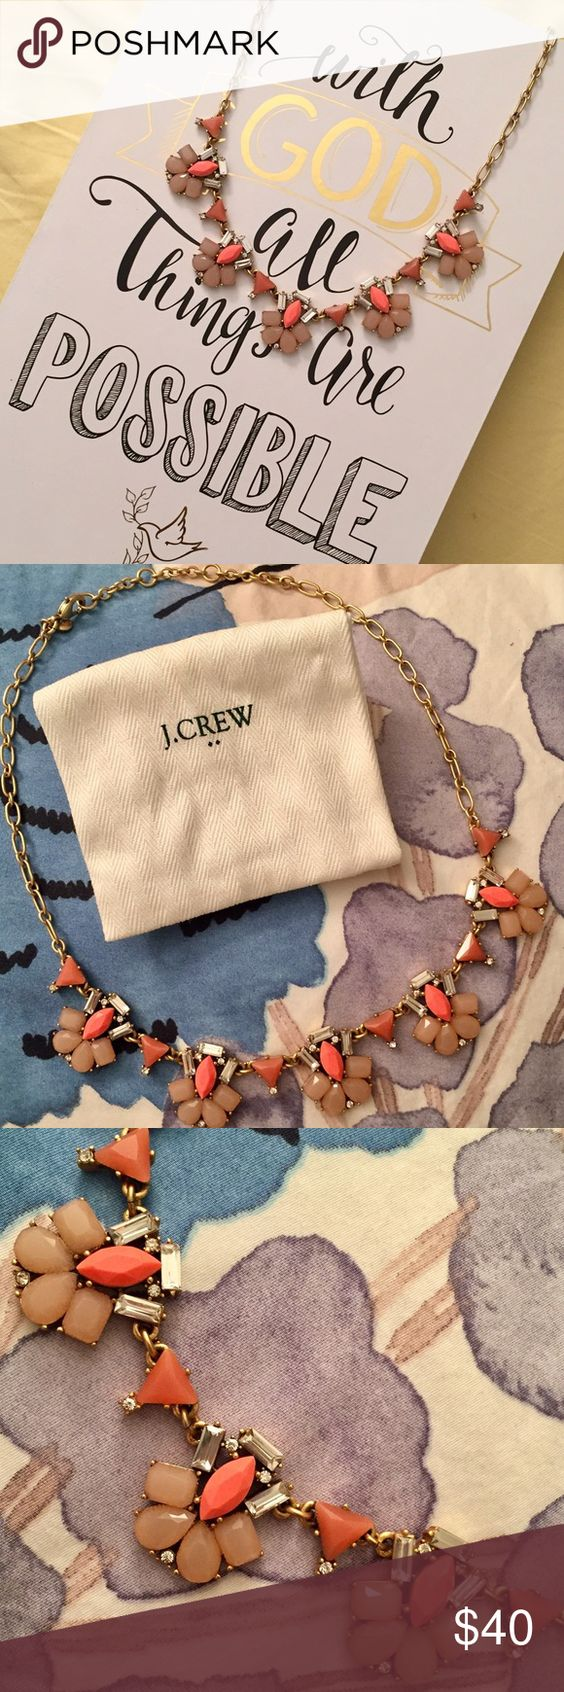 J Crew Pink Statement Necklace J Crew Pink Statement Necklace. Beautiful necklace in wonderful condition. I've only worn it a couple times. You can dress it up or dress it down. J. Crew Jewelry Necklaces